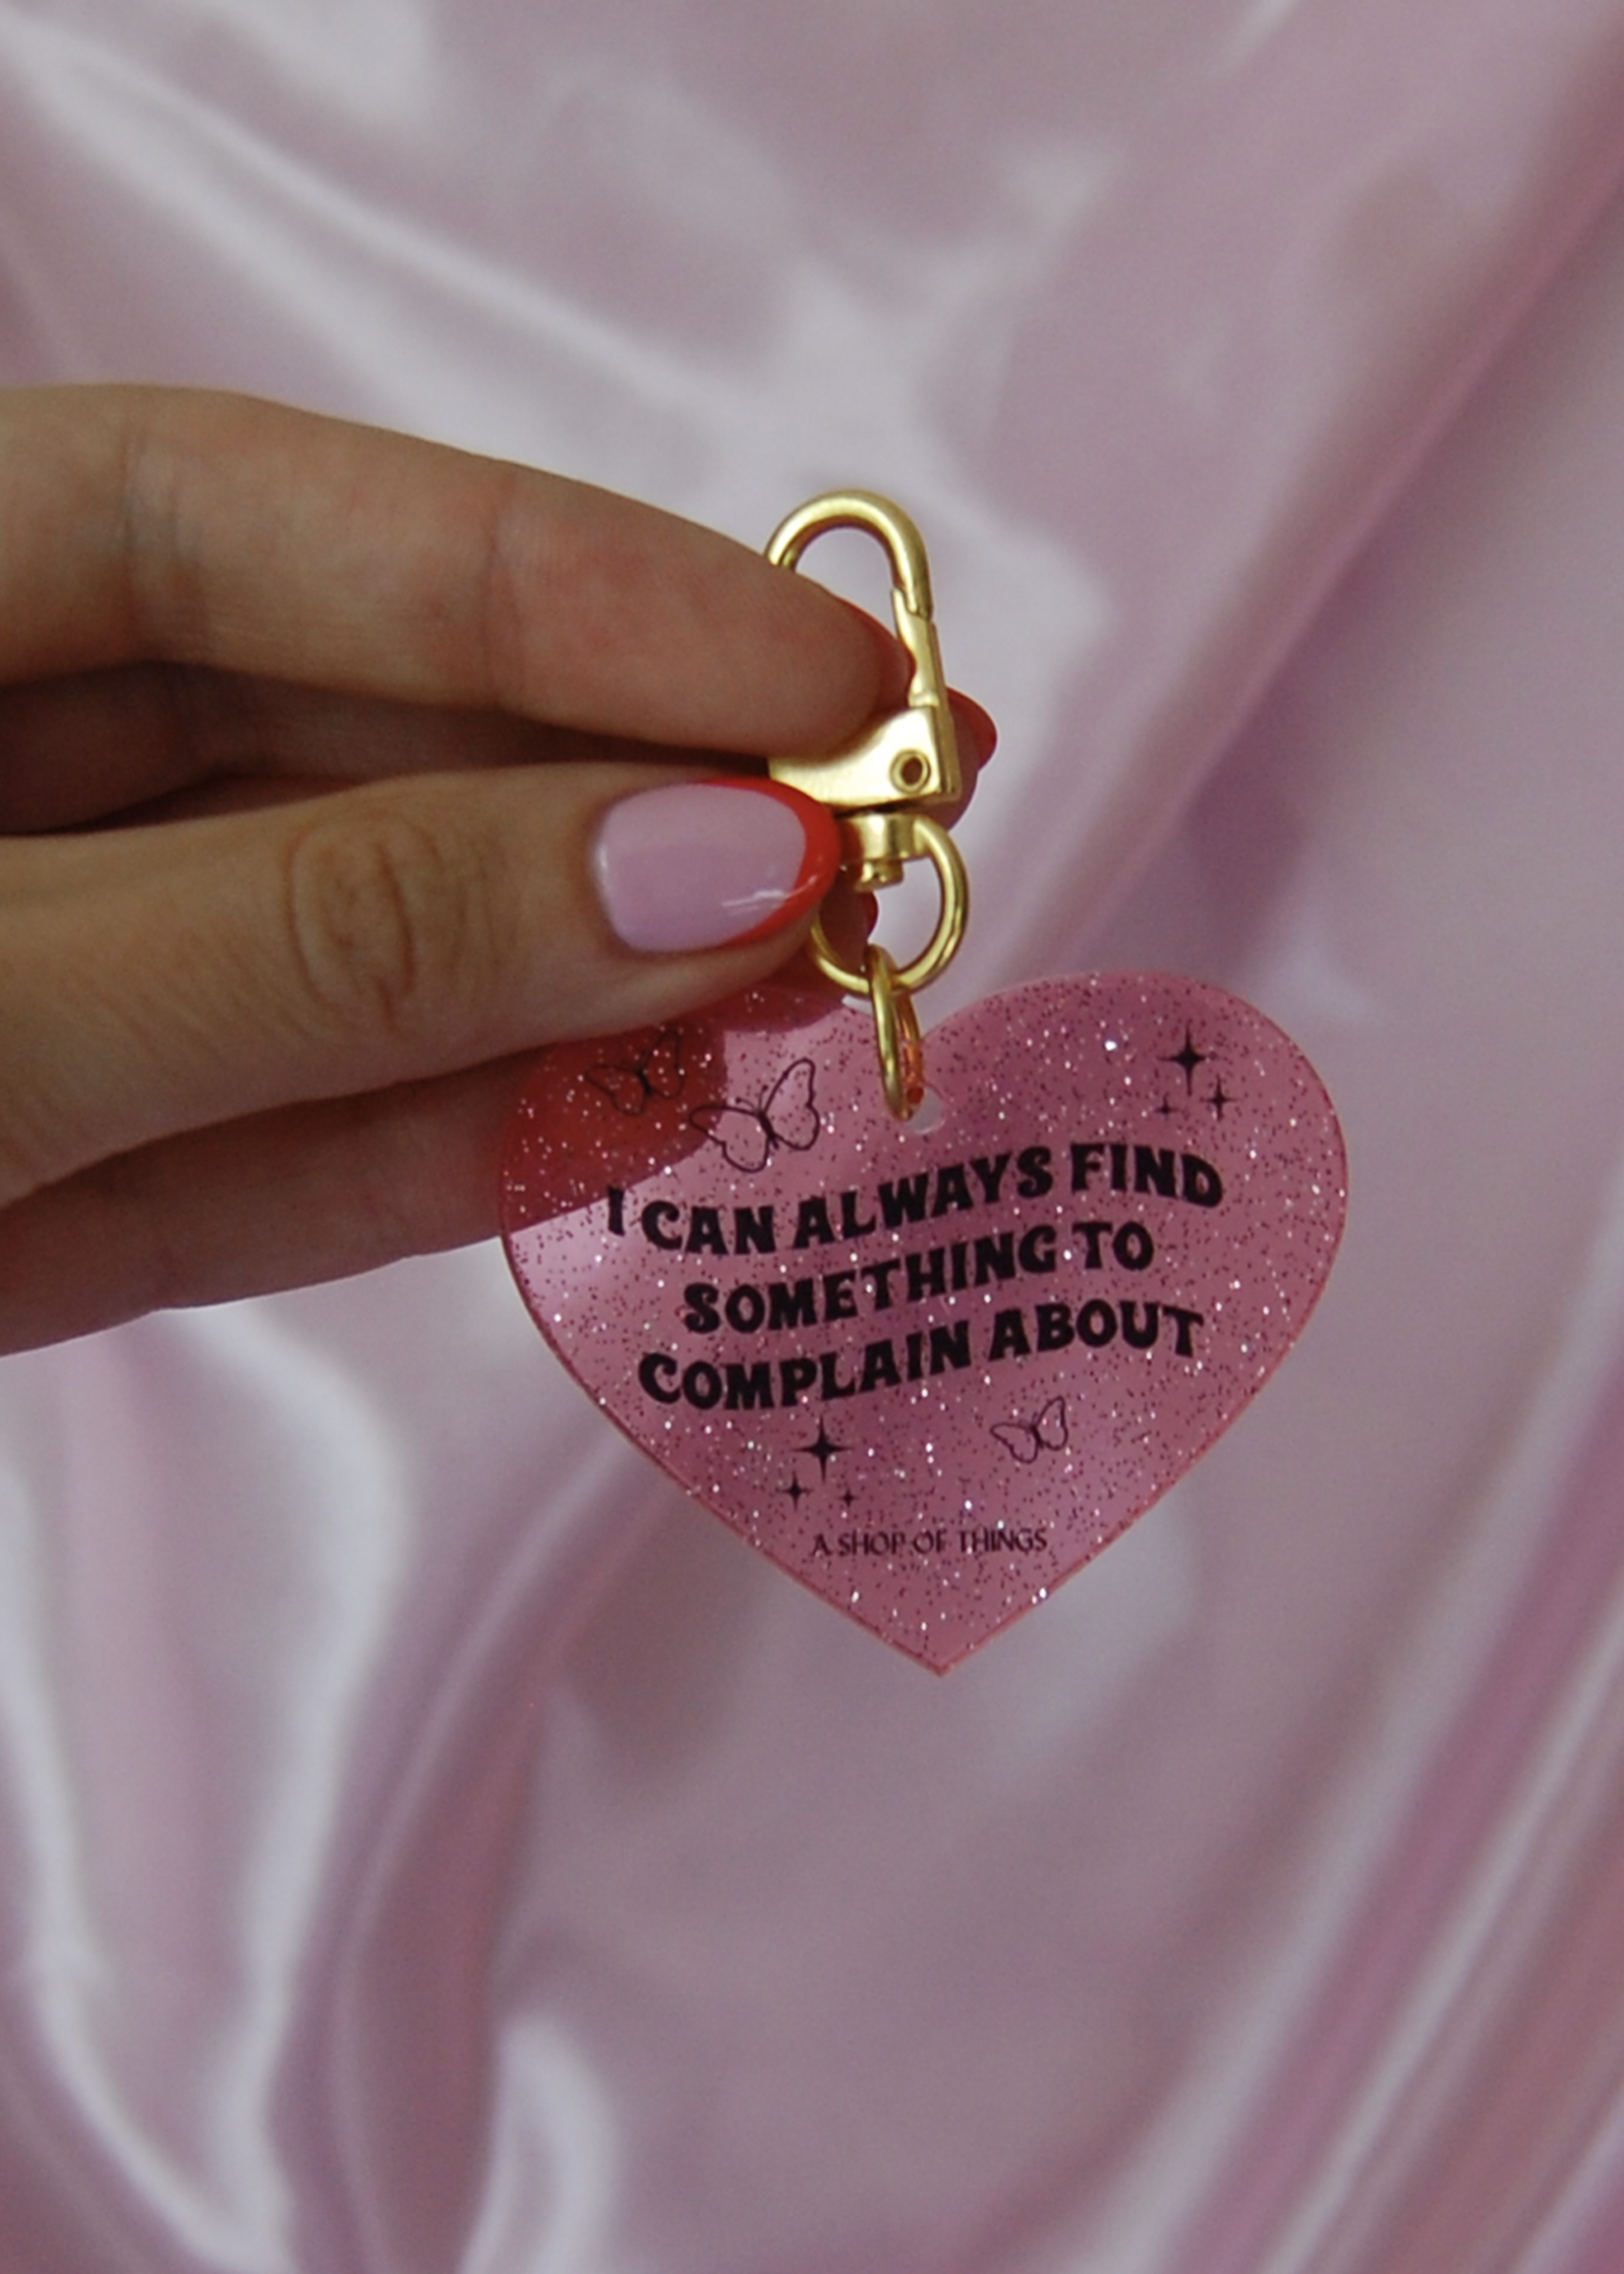 A SHOP OF THINGS COMPLAIN GLITTER KEYCHAIN